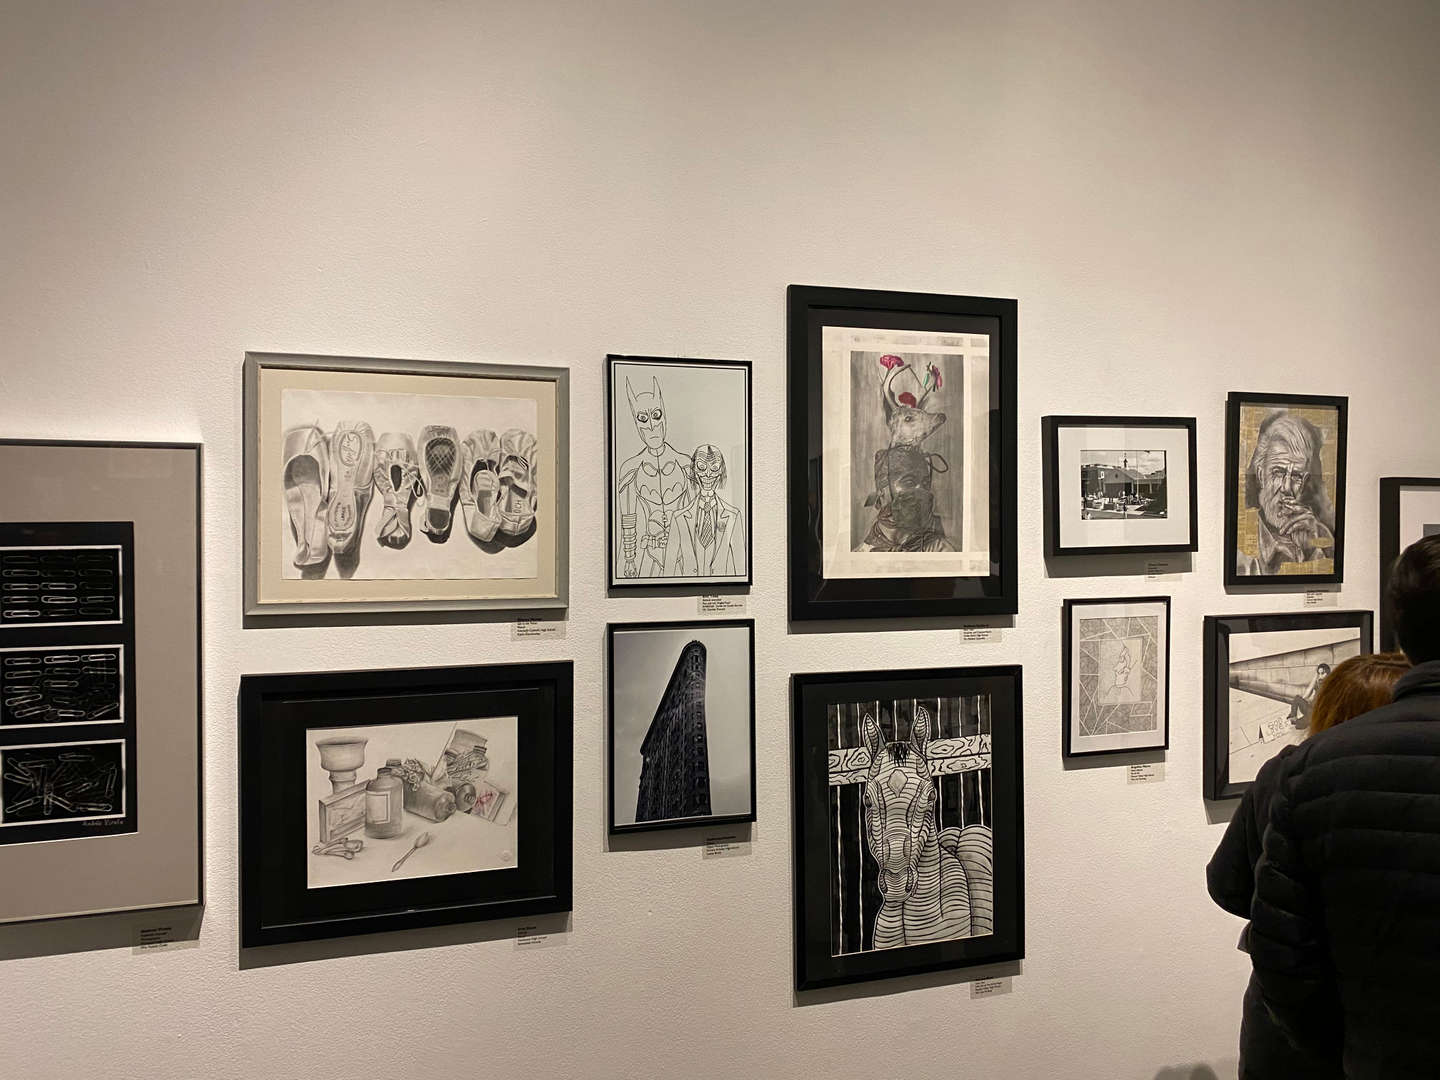 Black and white images hanging in gallery